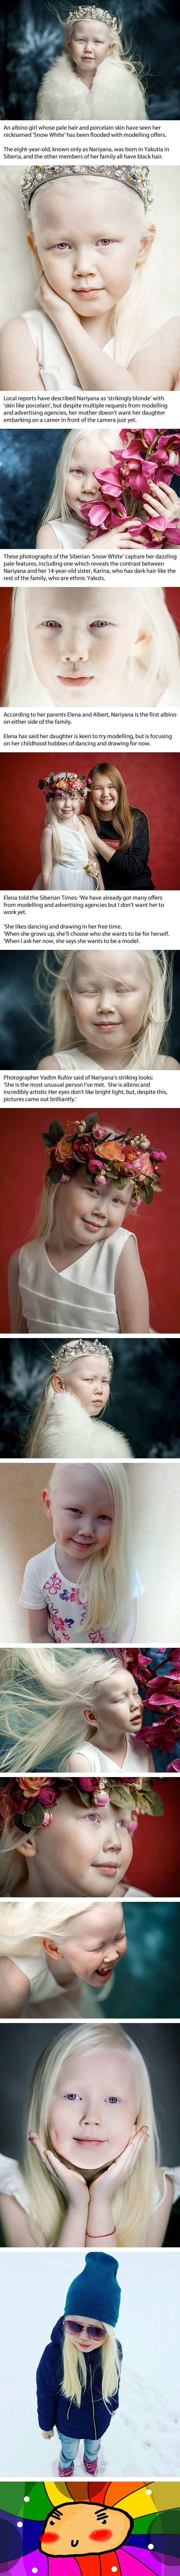 Snow White from Siberia: 8-year-old model with the rarest appearance